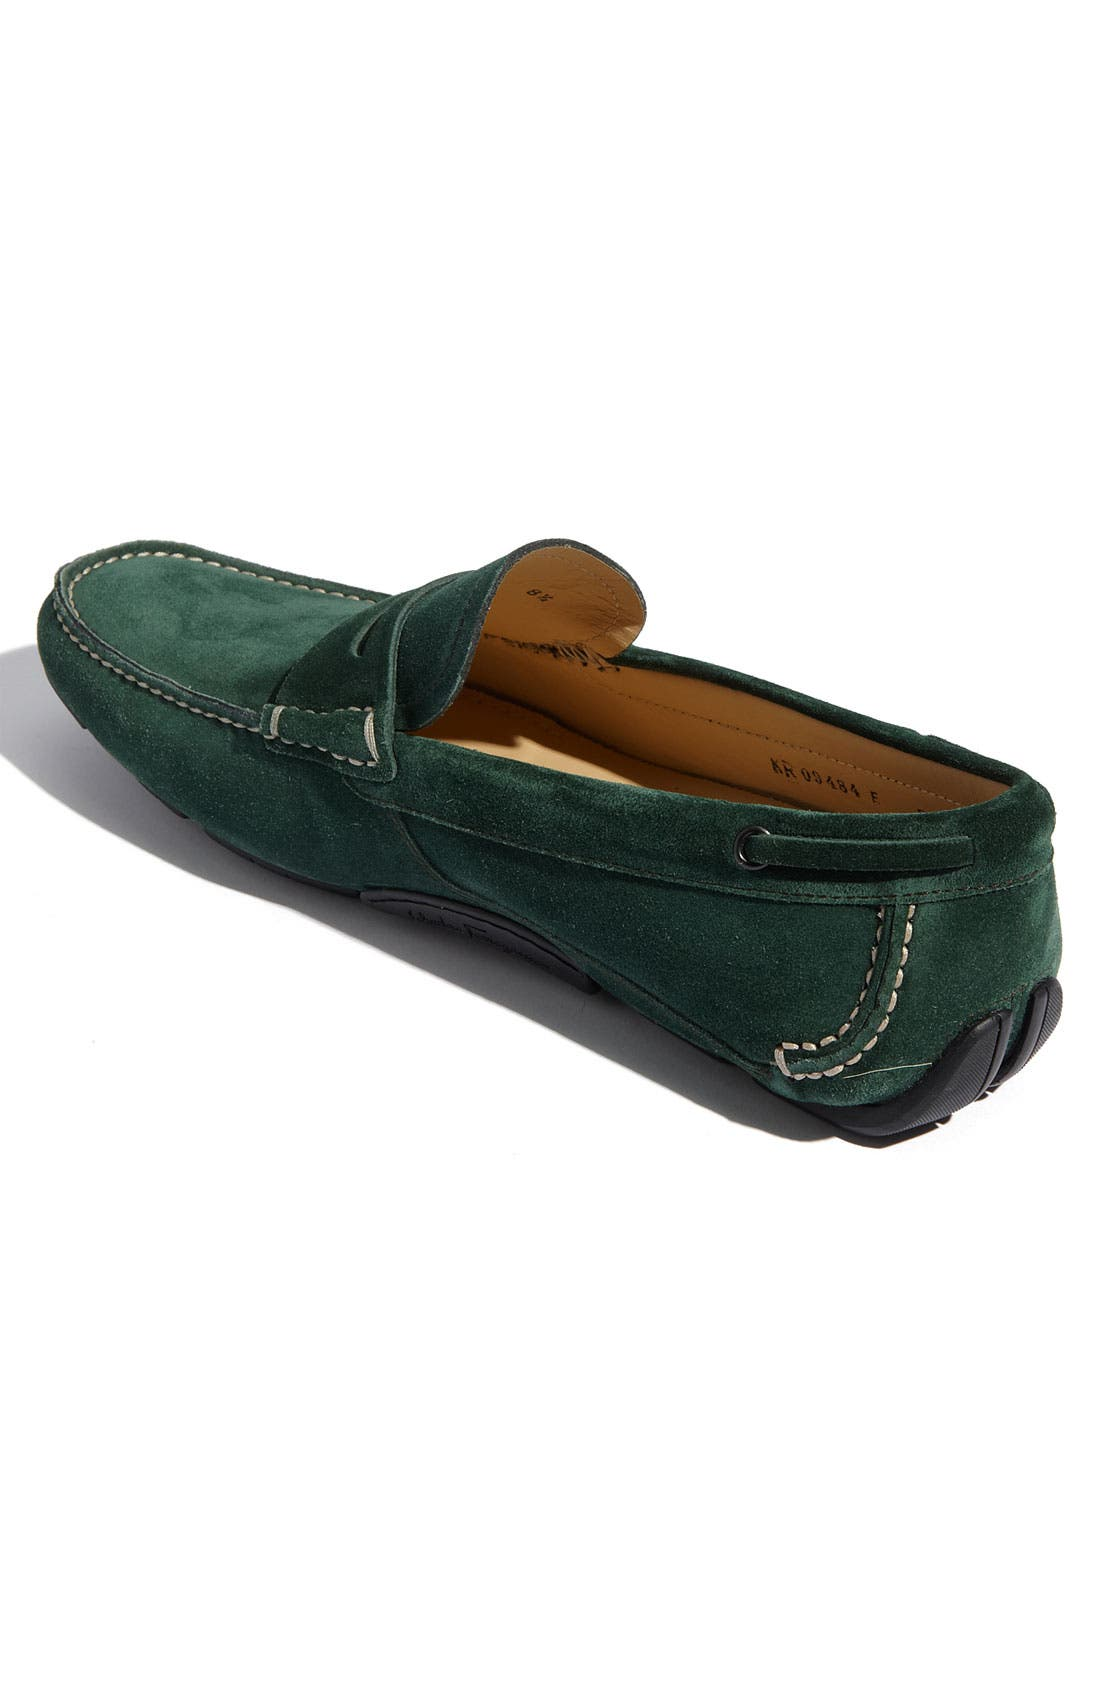 Alternate Image 2  - Salvatore Ferragamo 'Billy 2' Driving Moccasin